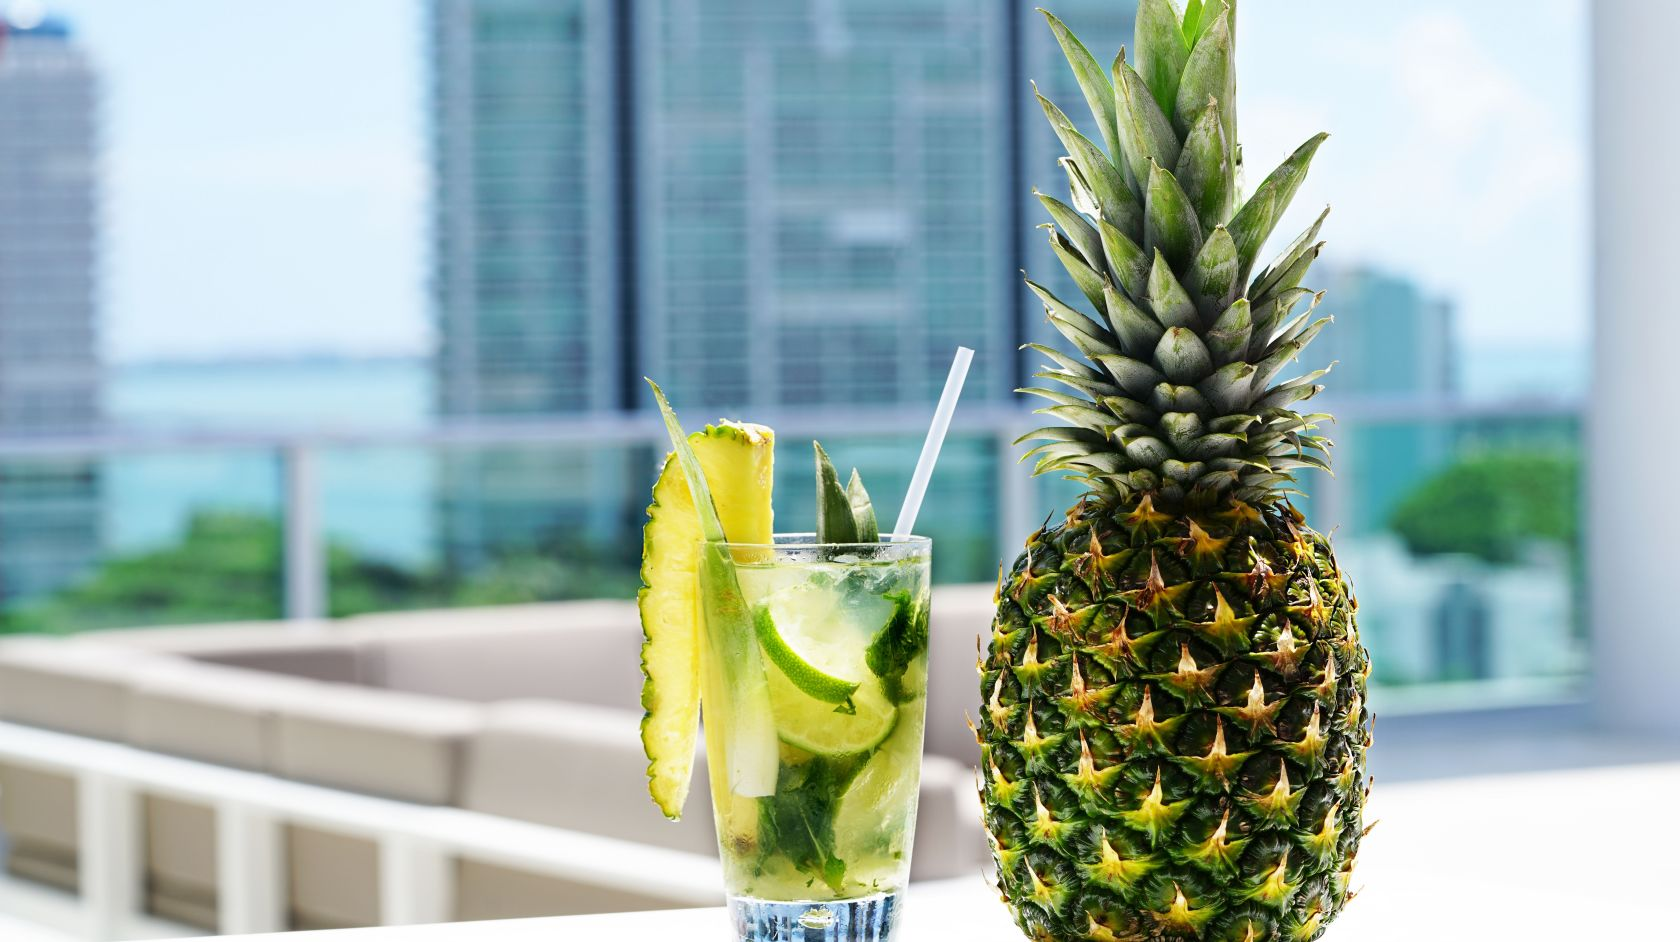 pineapple cocktail drink with pineapple next to it on Novotel Miami Brickell hotel rooftop